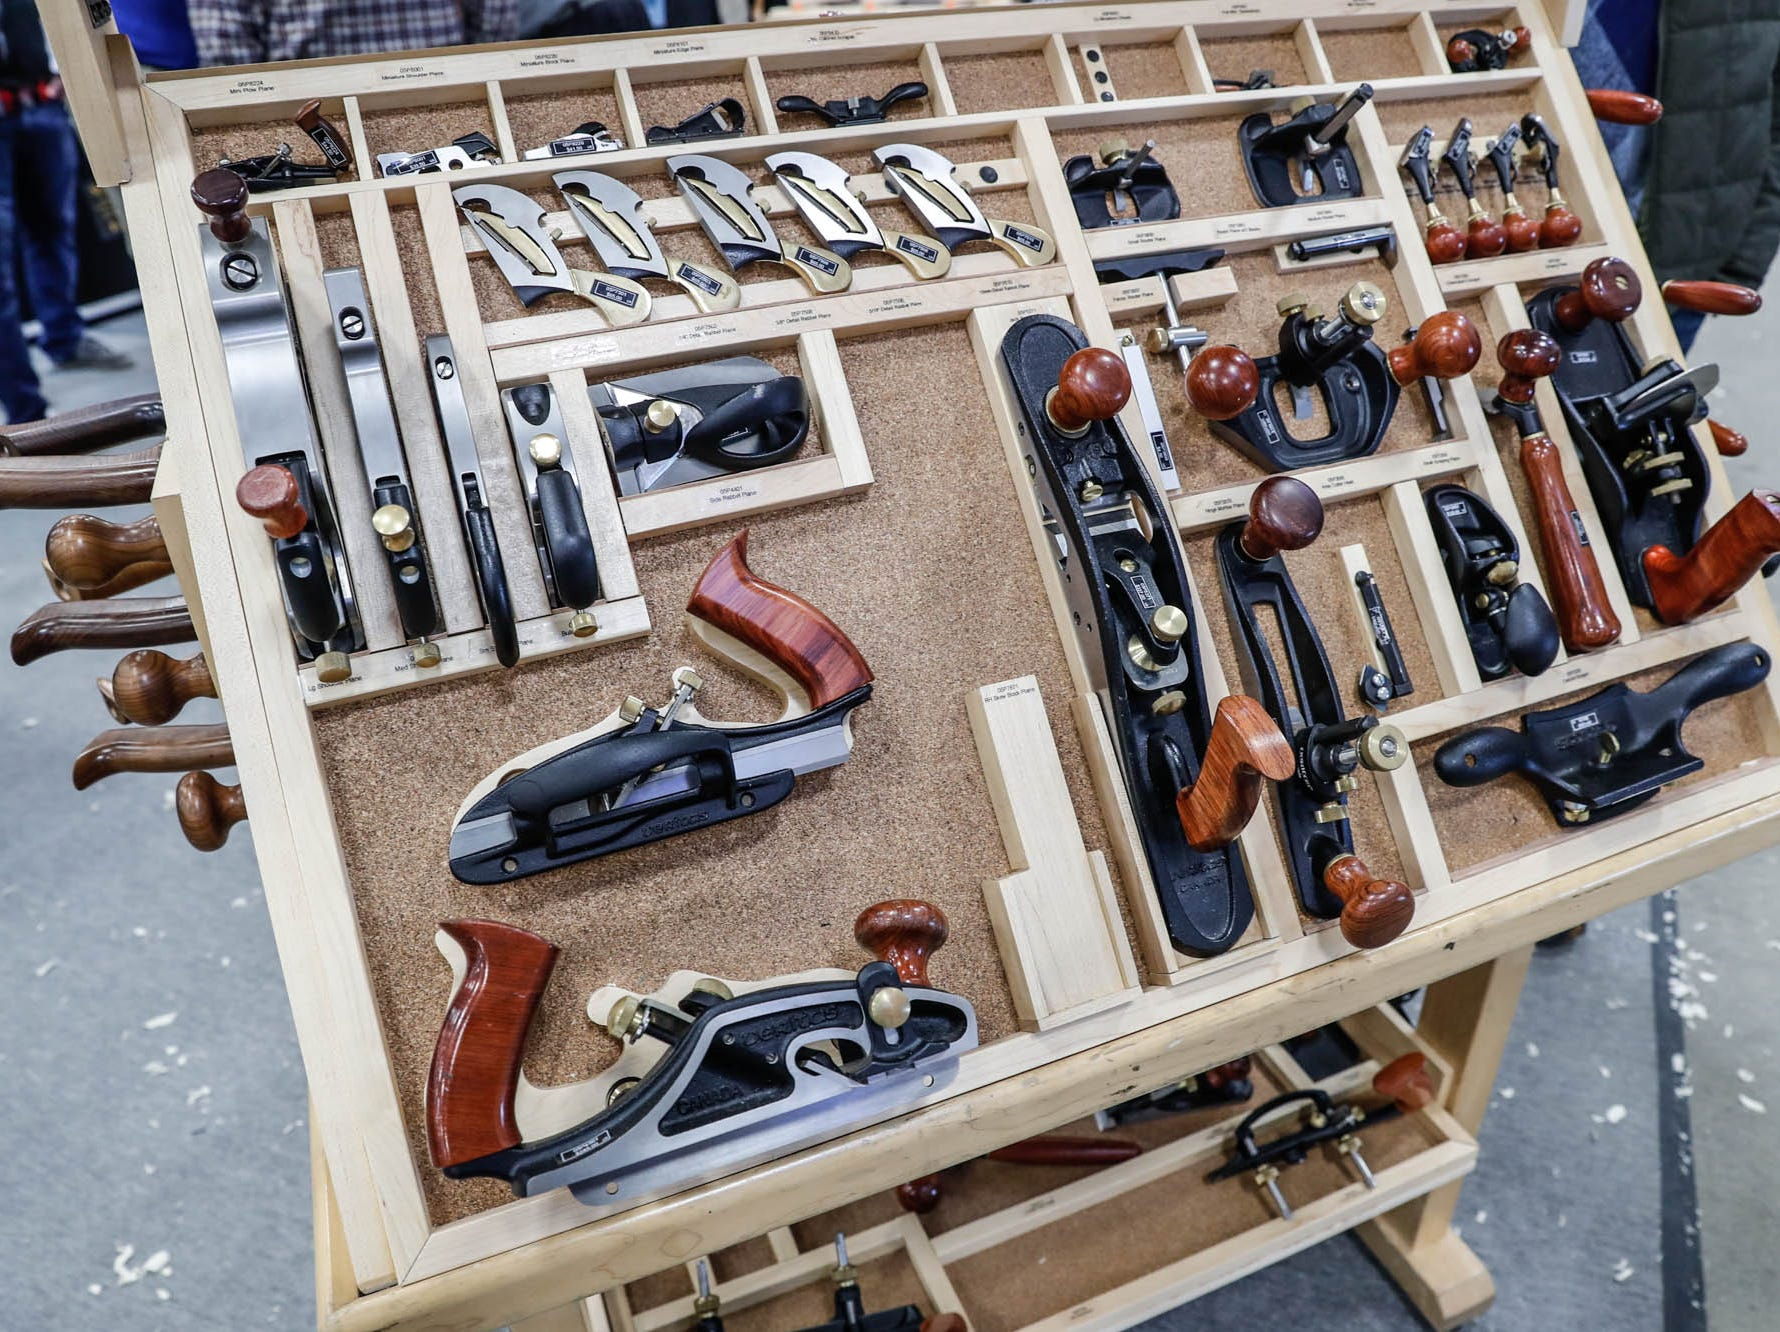 Hand tools are on display in the Veritas booth during a Wood Working Show at the Indiana State Fairgrounds in Indianapolis on Sunday, Feb. 3, 2019.